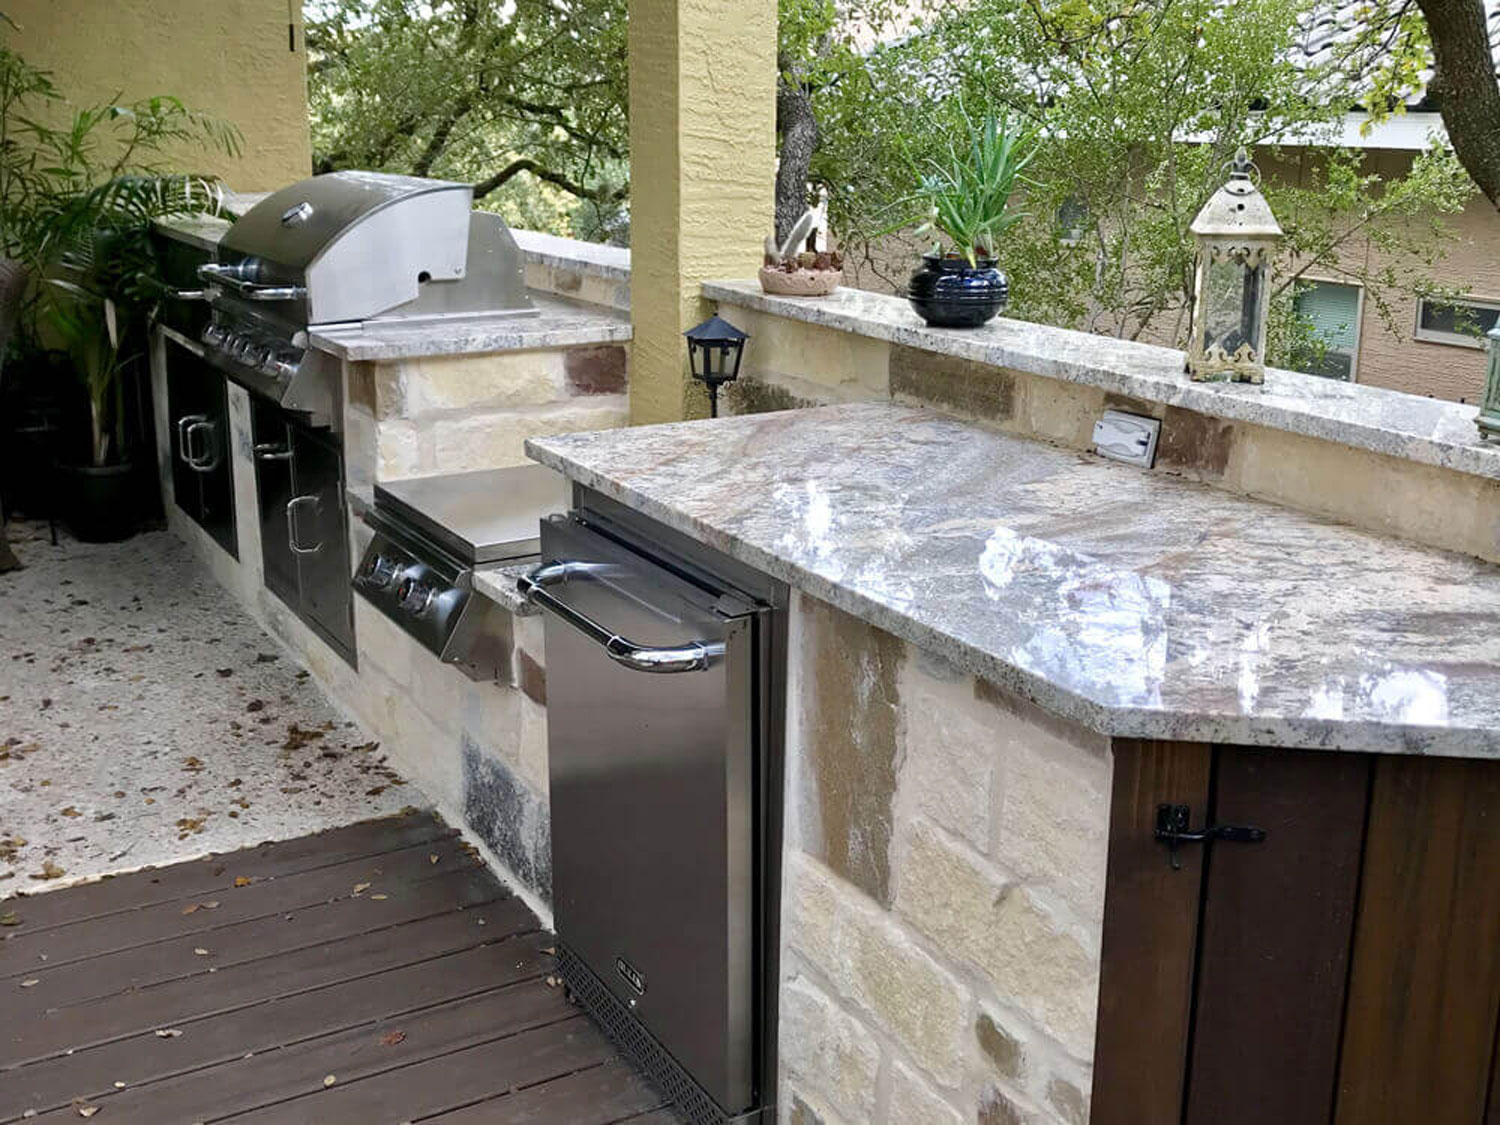 Backyard Barbecue with sink and a nice view